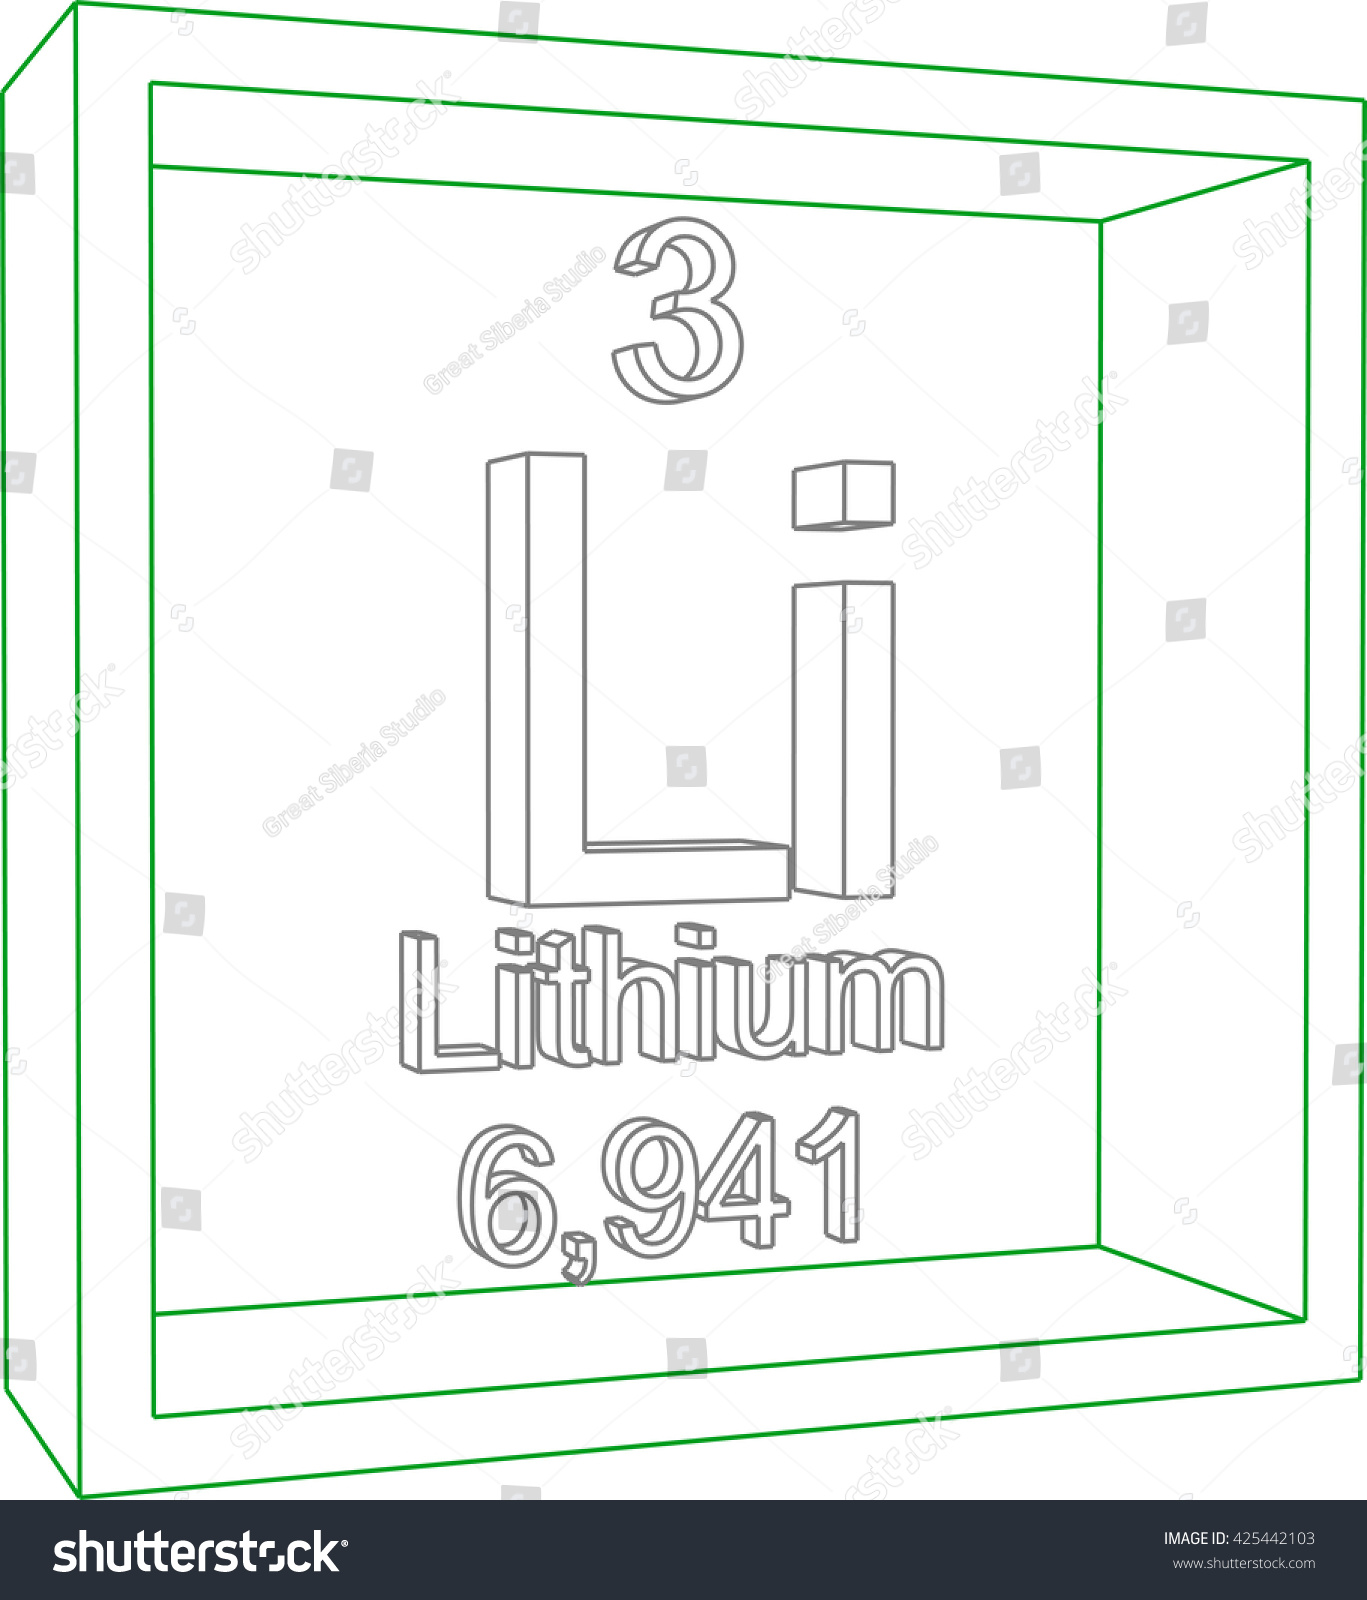 Periodic table elements lithium stock vector 425442103 shutterstock periodic table of elements lithium urtaz Gallery